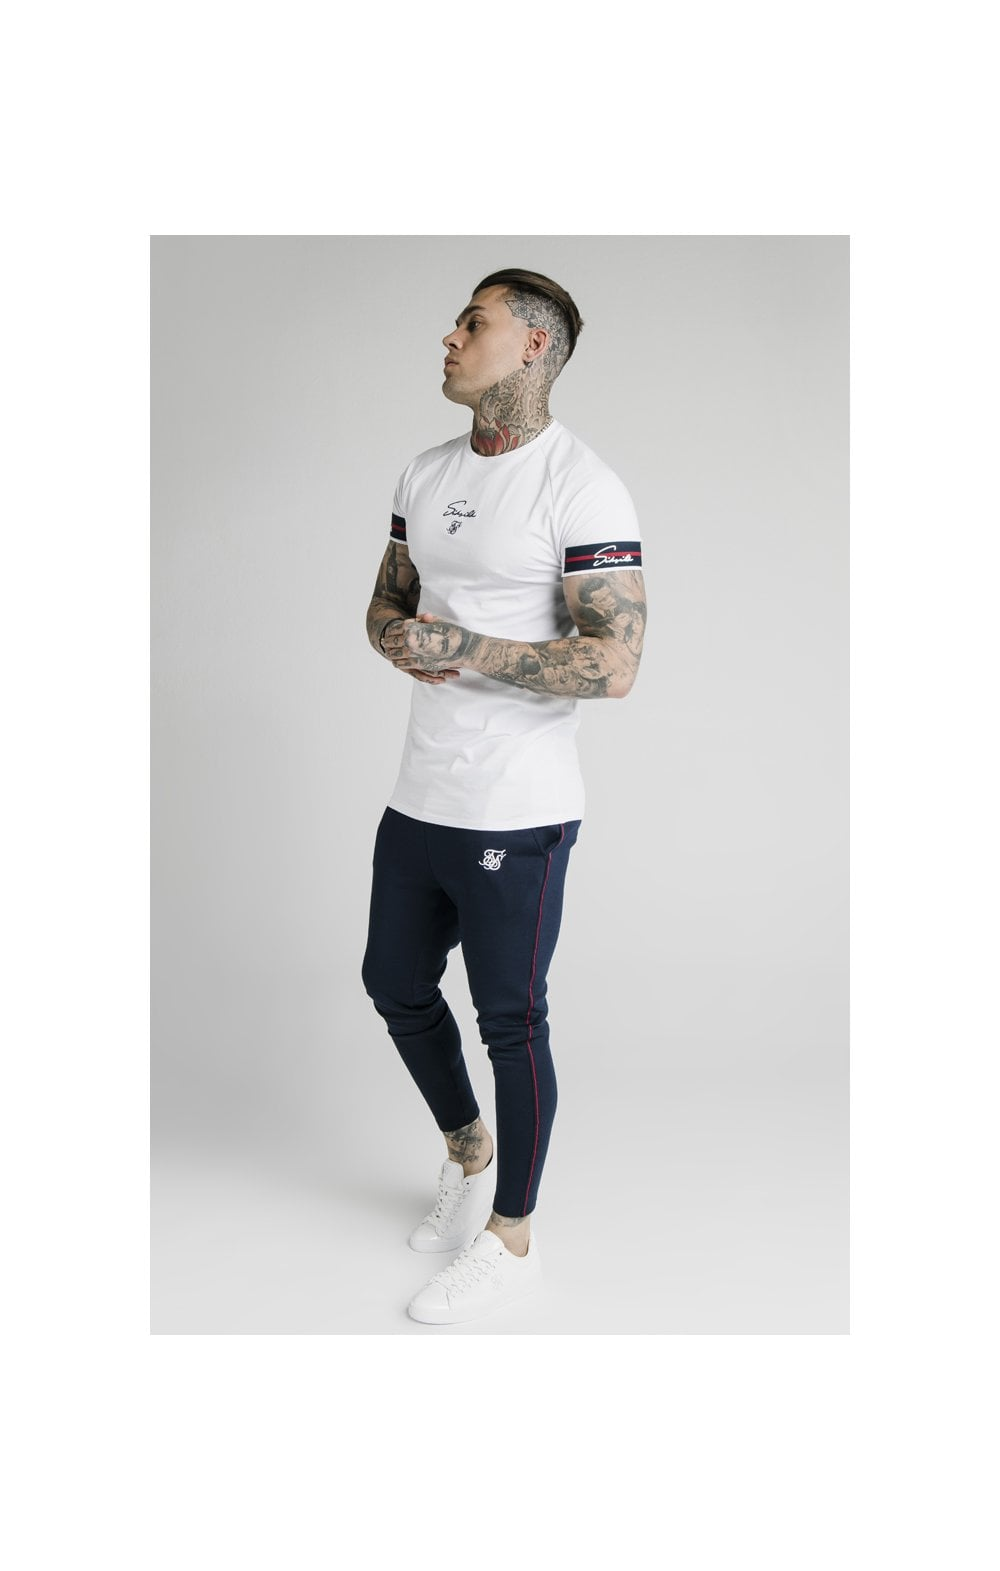 Load image into Gallery viewer, SikSilk Raglan Tech Tee Exposed Tape - White (6)